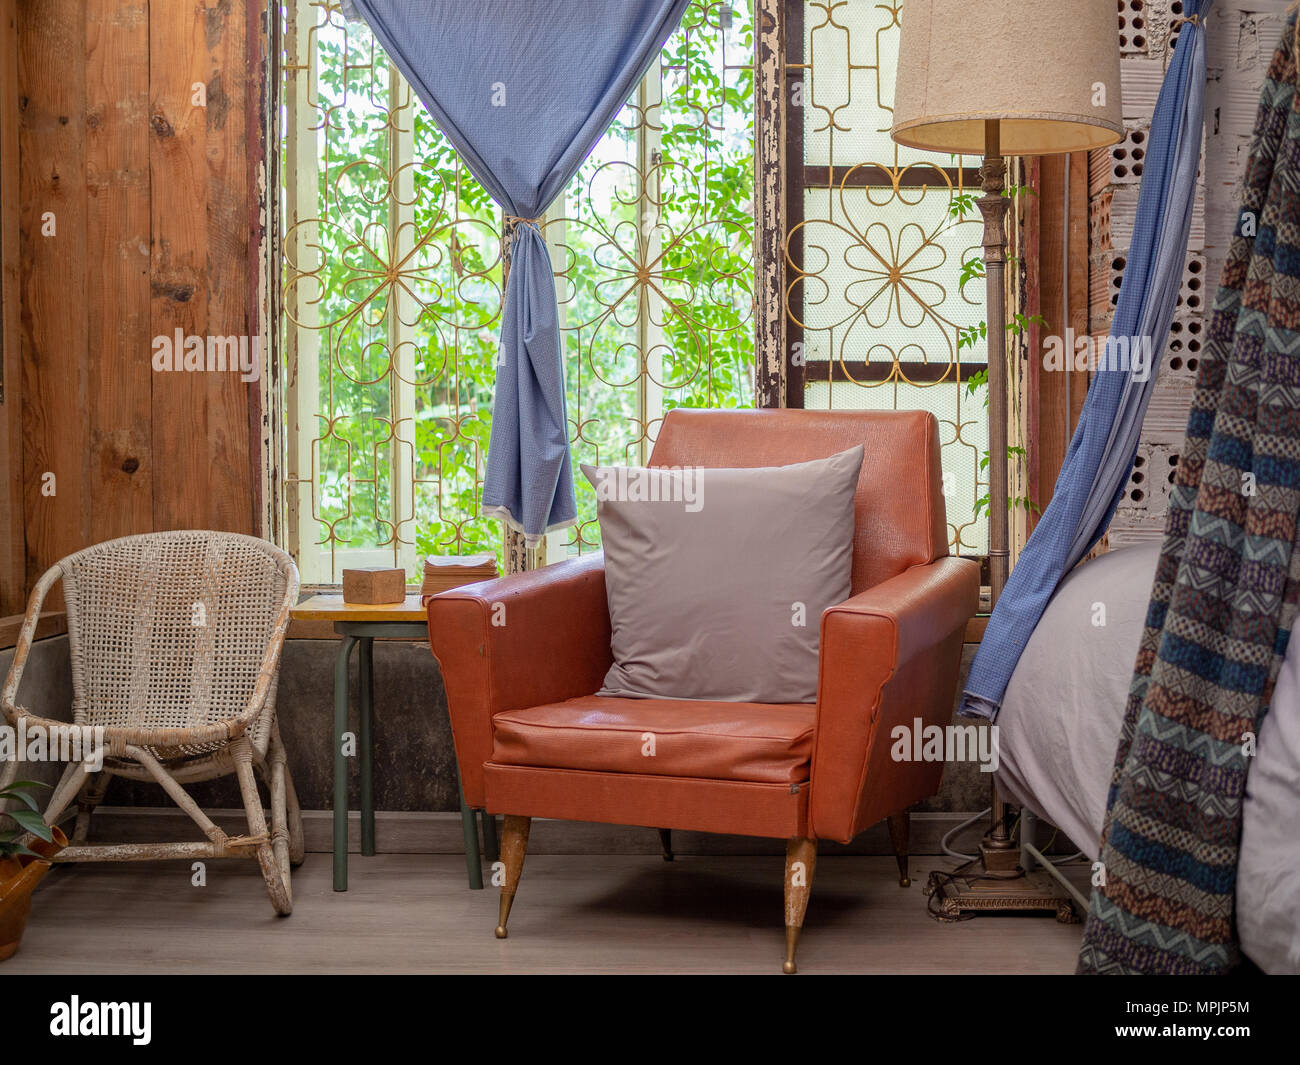 Rattan Sofa Luanda Mortar Bed Stock Photos Mortar Bed Stock Images Alamy